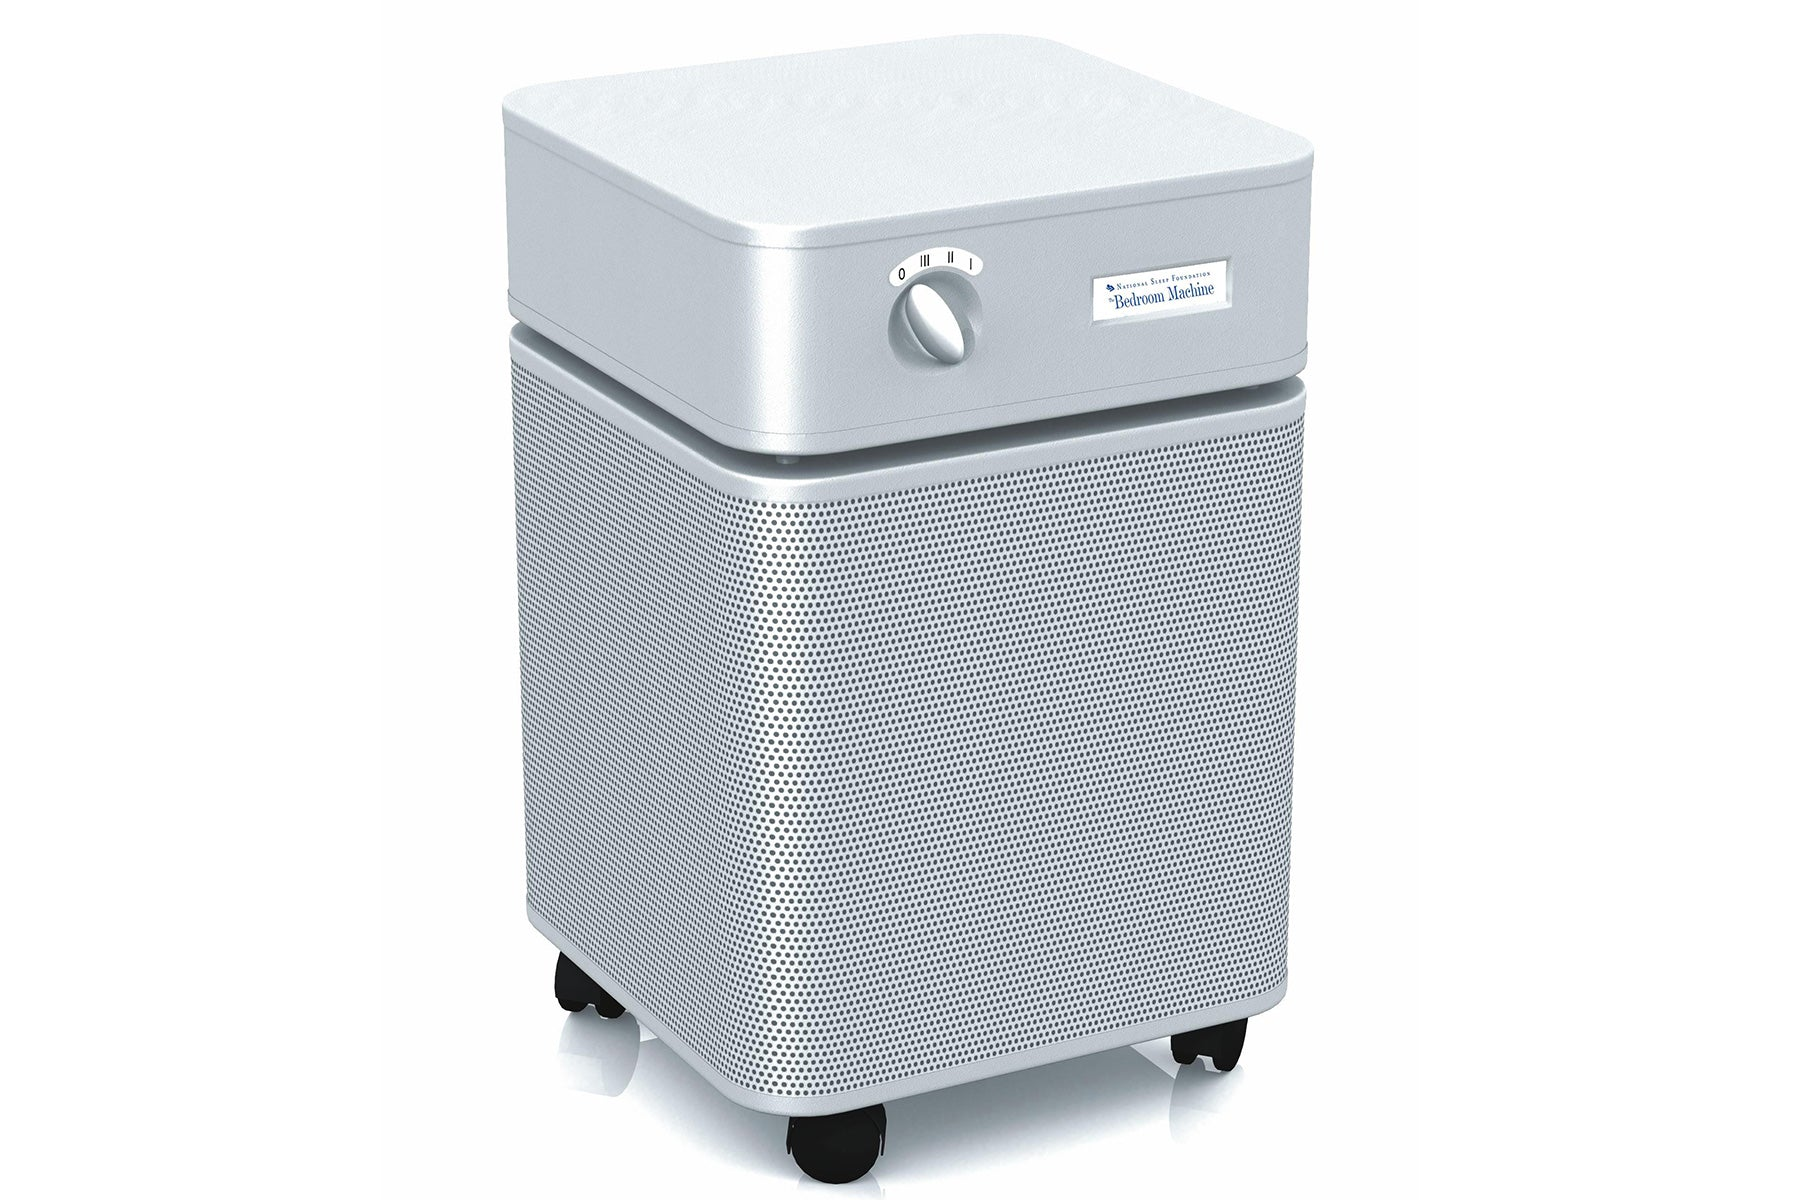 AirPurifier Austin Air Bedroom Machine® B402 Air Purifier(s)